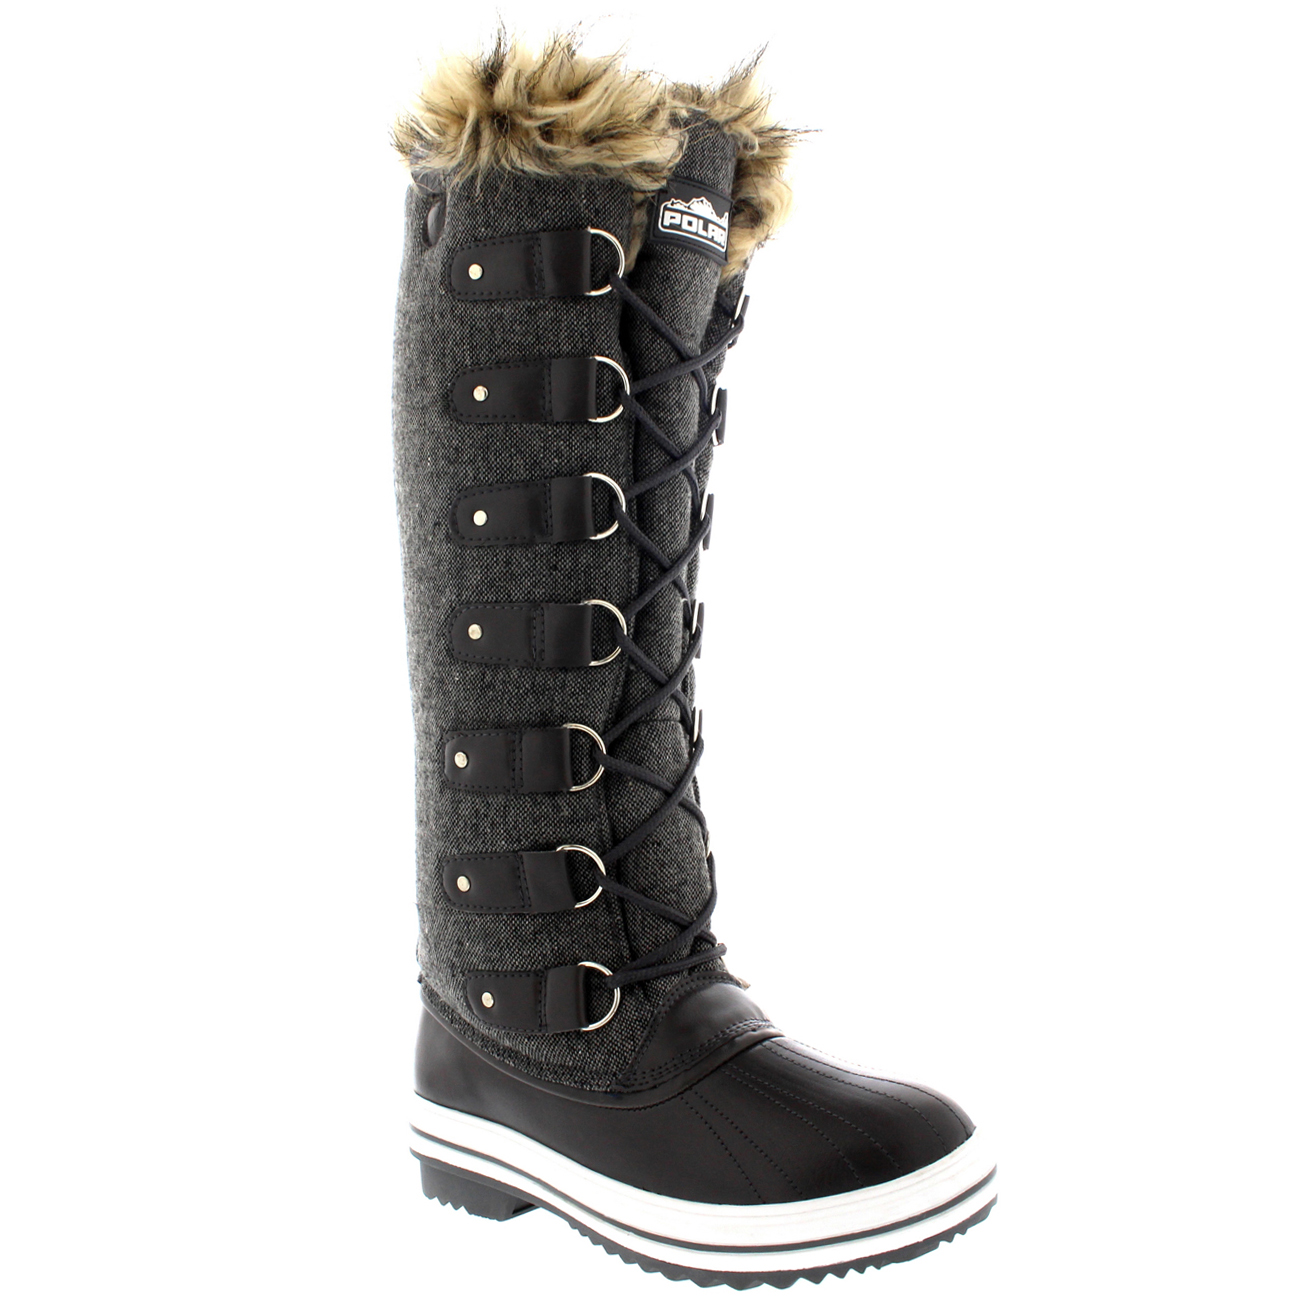 Womens Fur Cuff Lace Up Rubber Sole Knee High Winter Snow ...